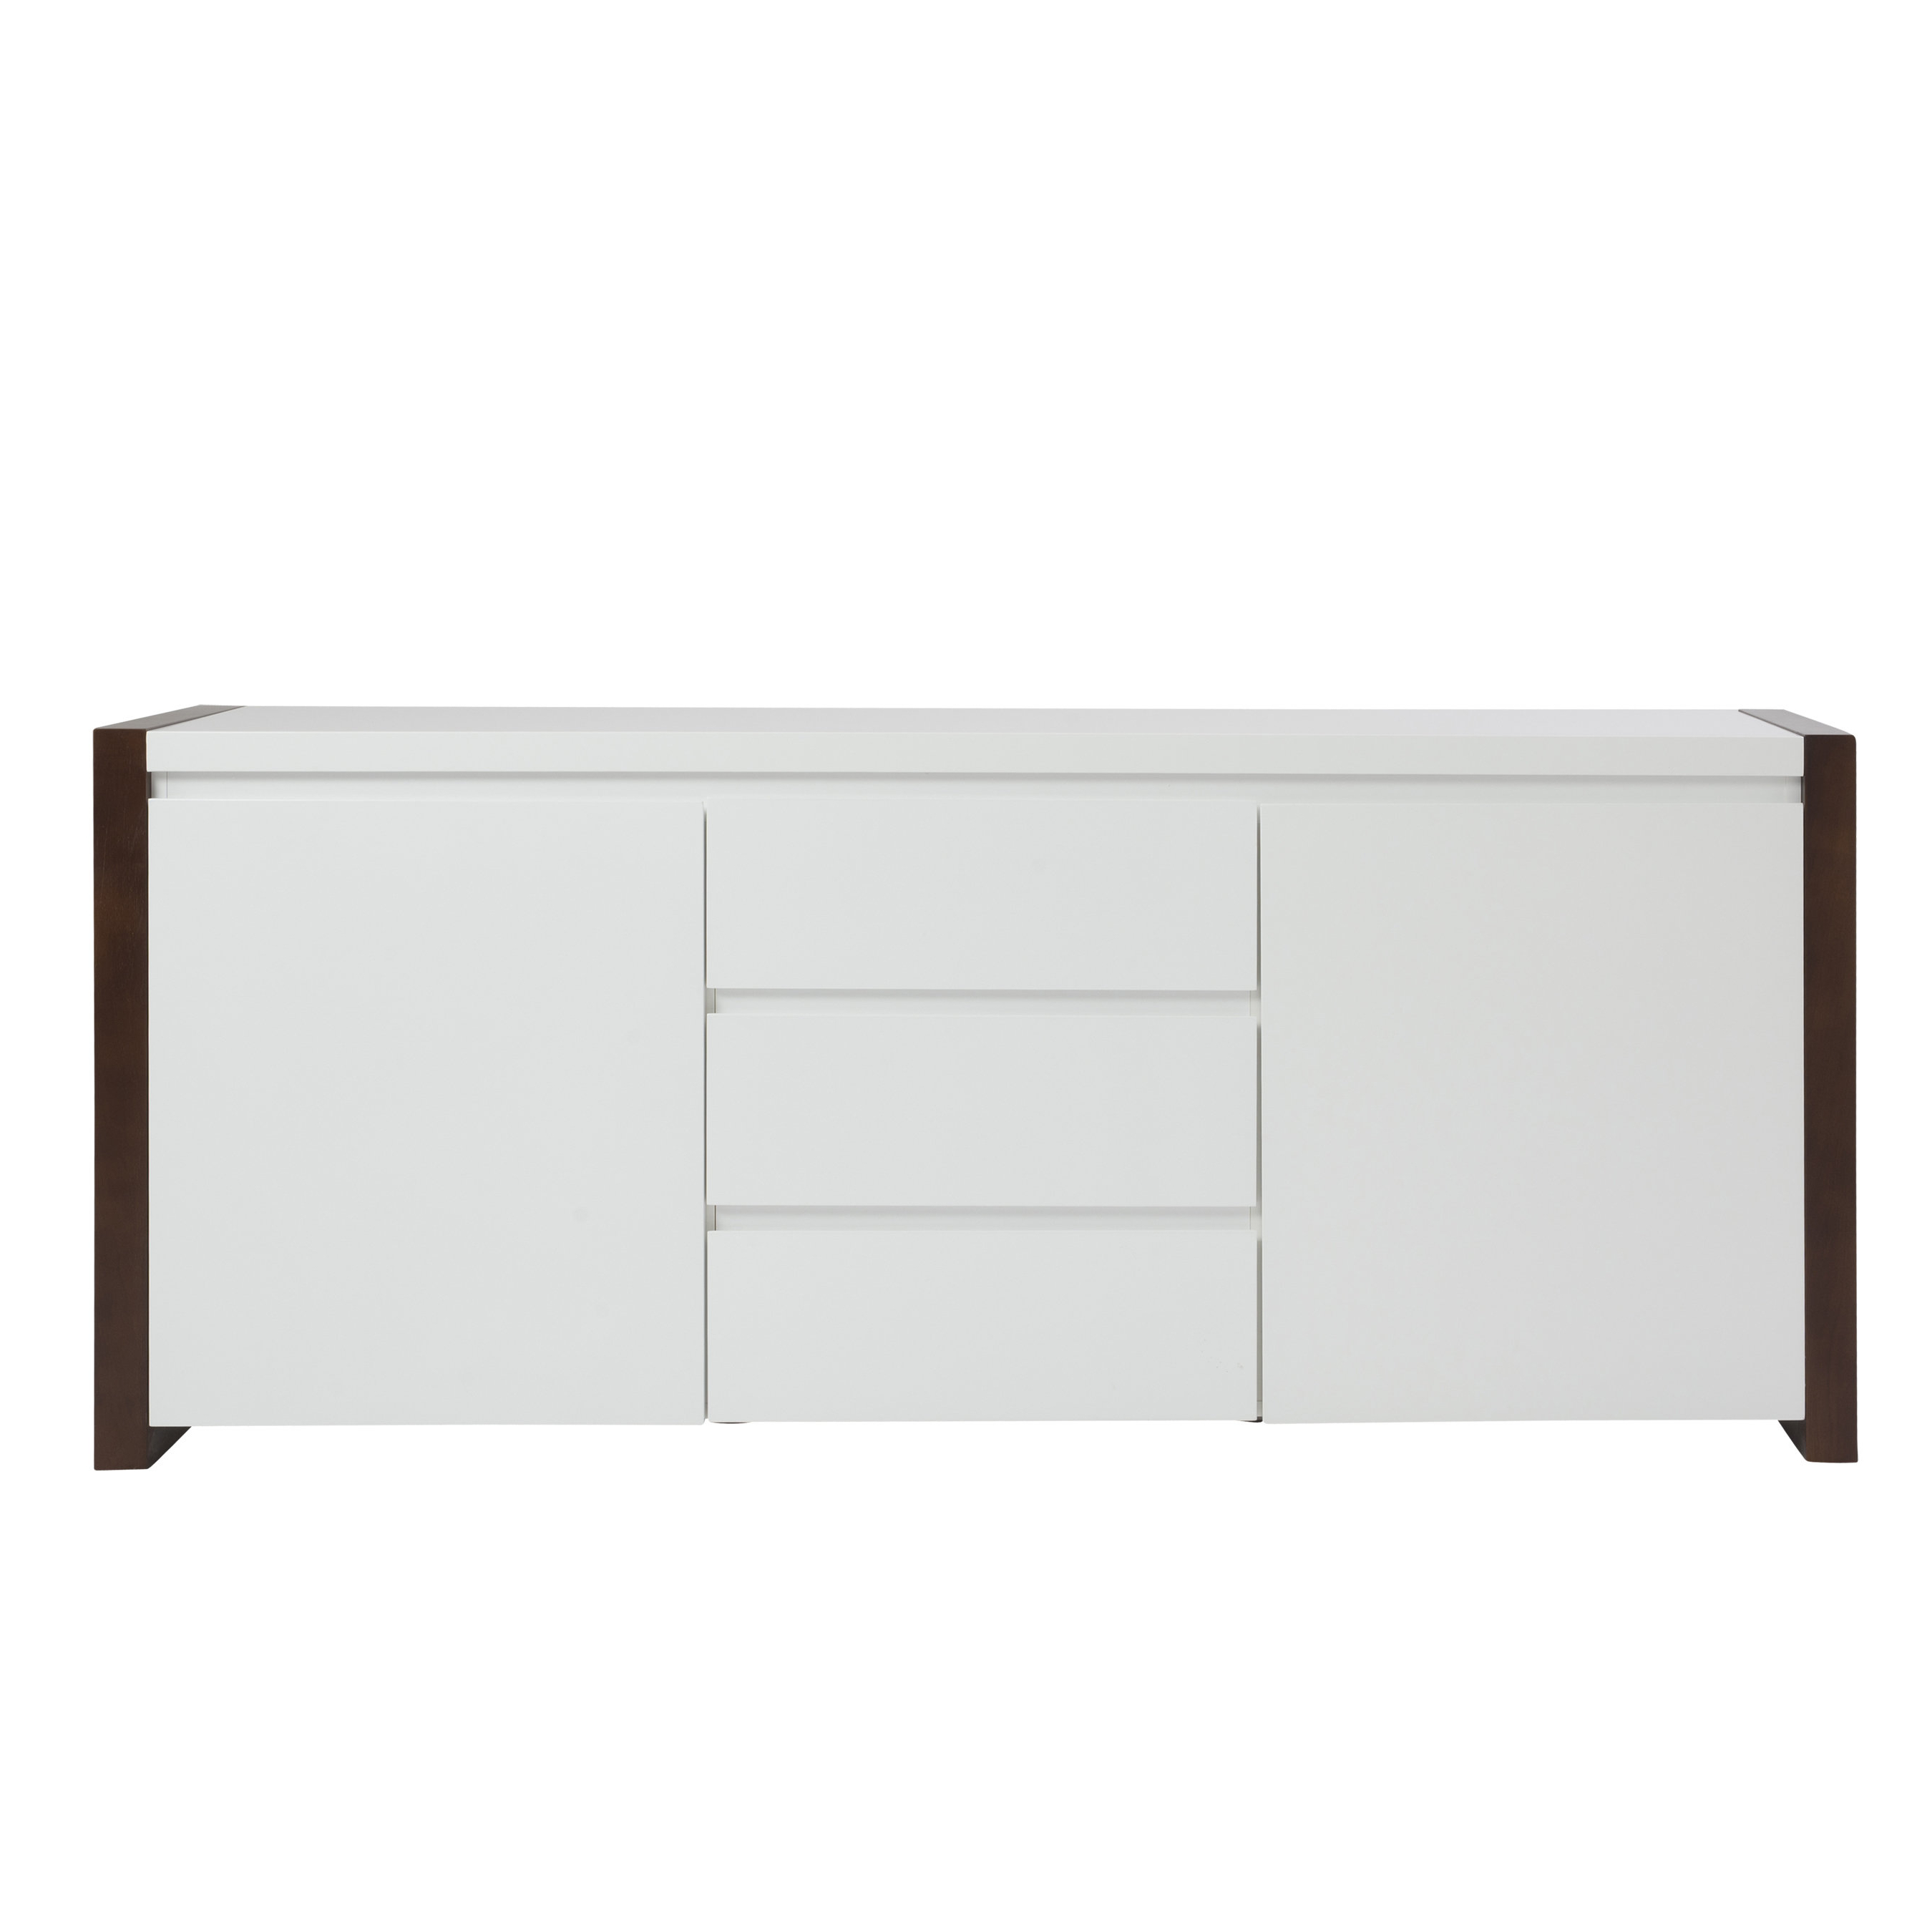 Fashionable Damian Sideboards With Regard To Brayden Sideboard (Gallery 20 of 20)